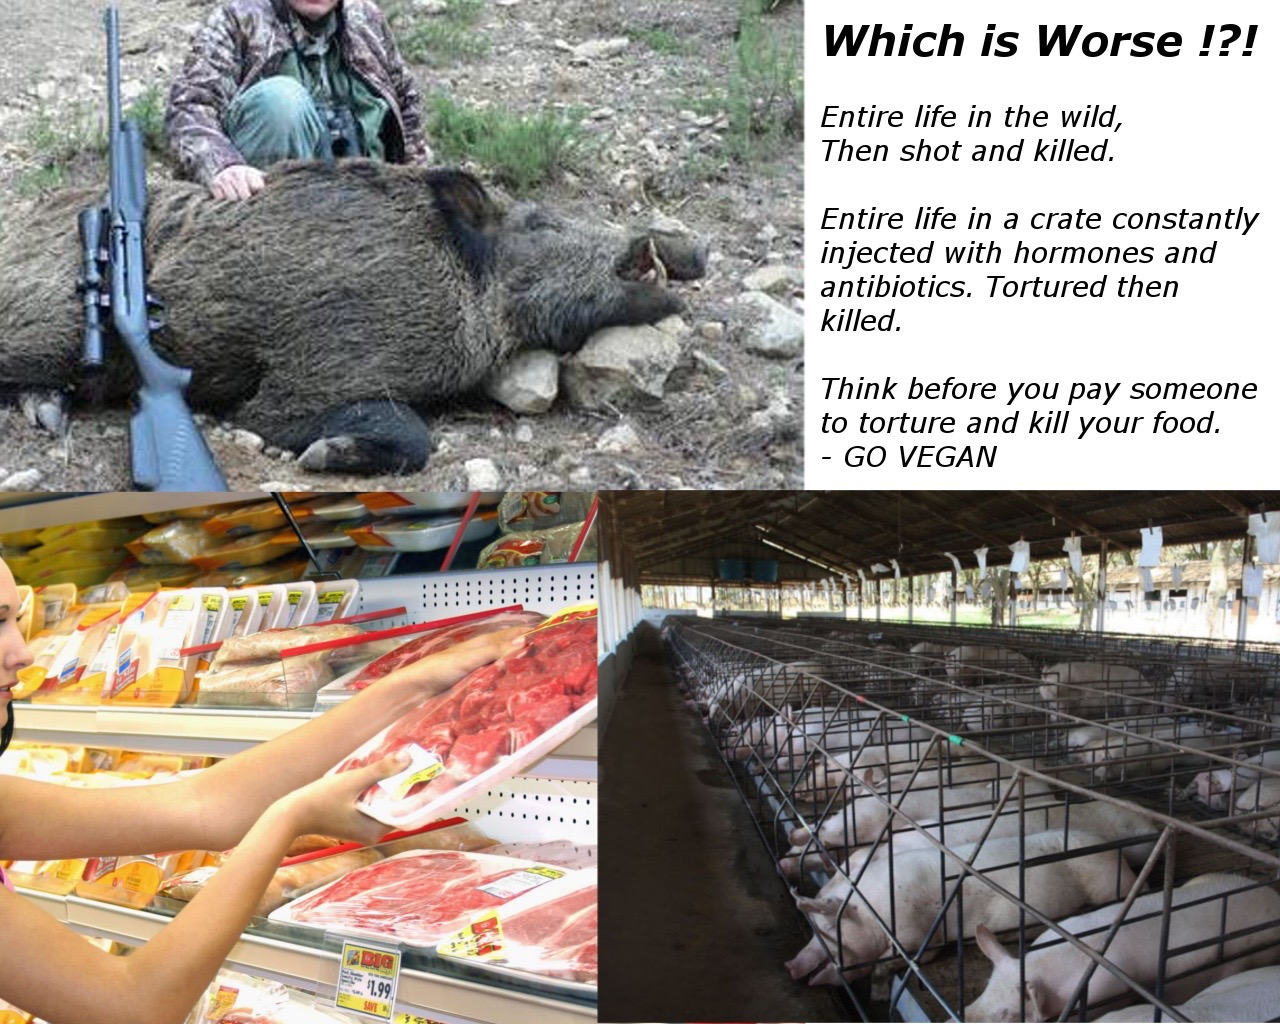 Which is Worse !?! Entire life in the wild, Then shot and killed. Entire life in a crate constantly injected with hormones and antibiotics. Tortured then killed. Think before you pay someone to torture and kill your food. - GO VEGAN